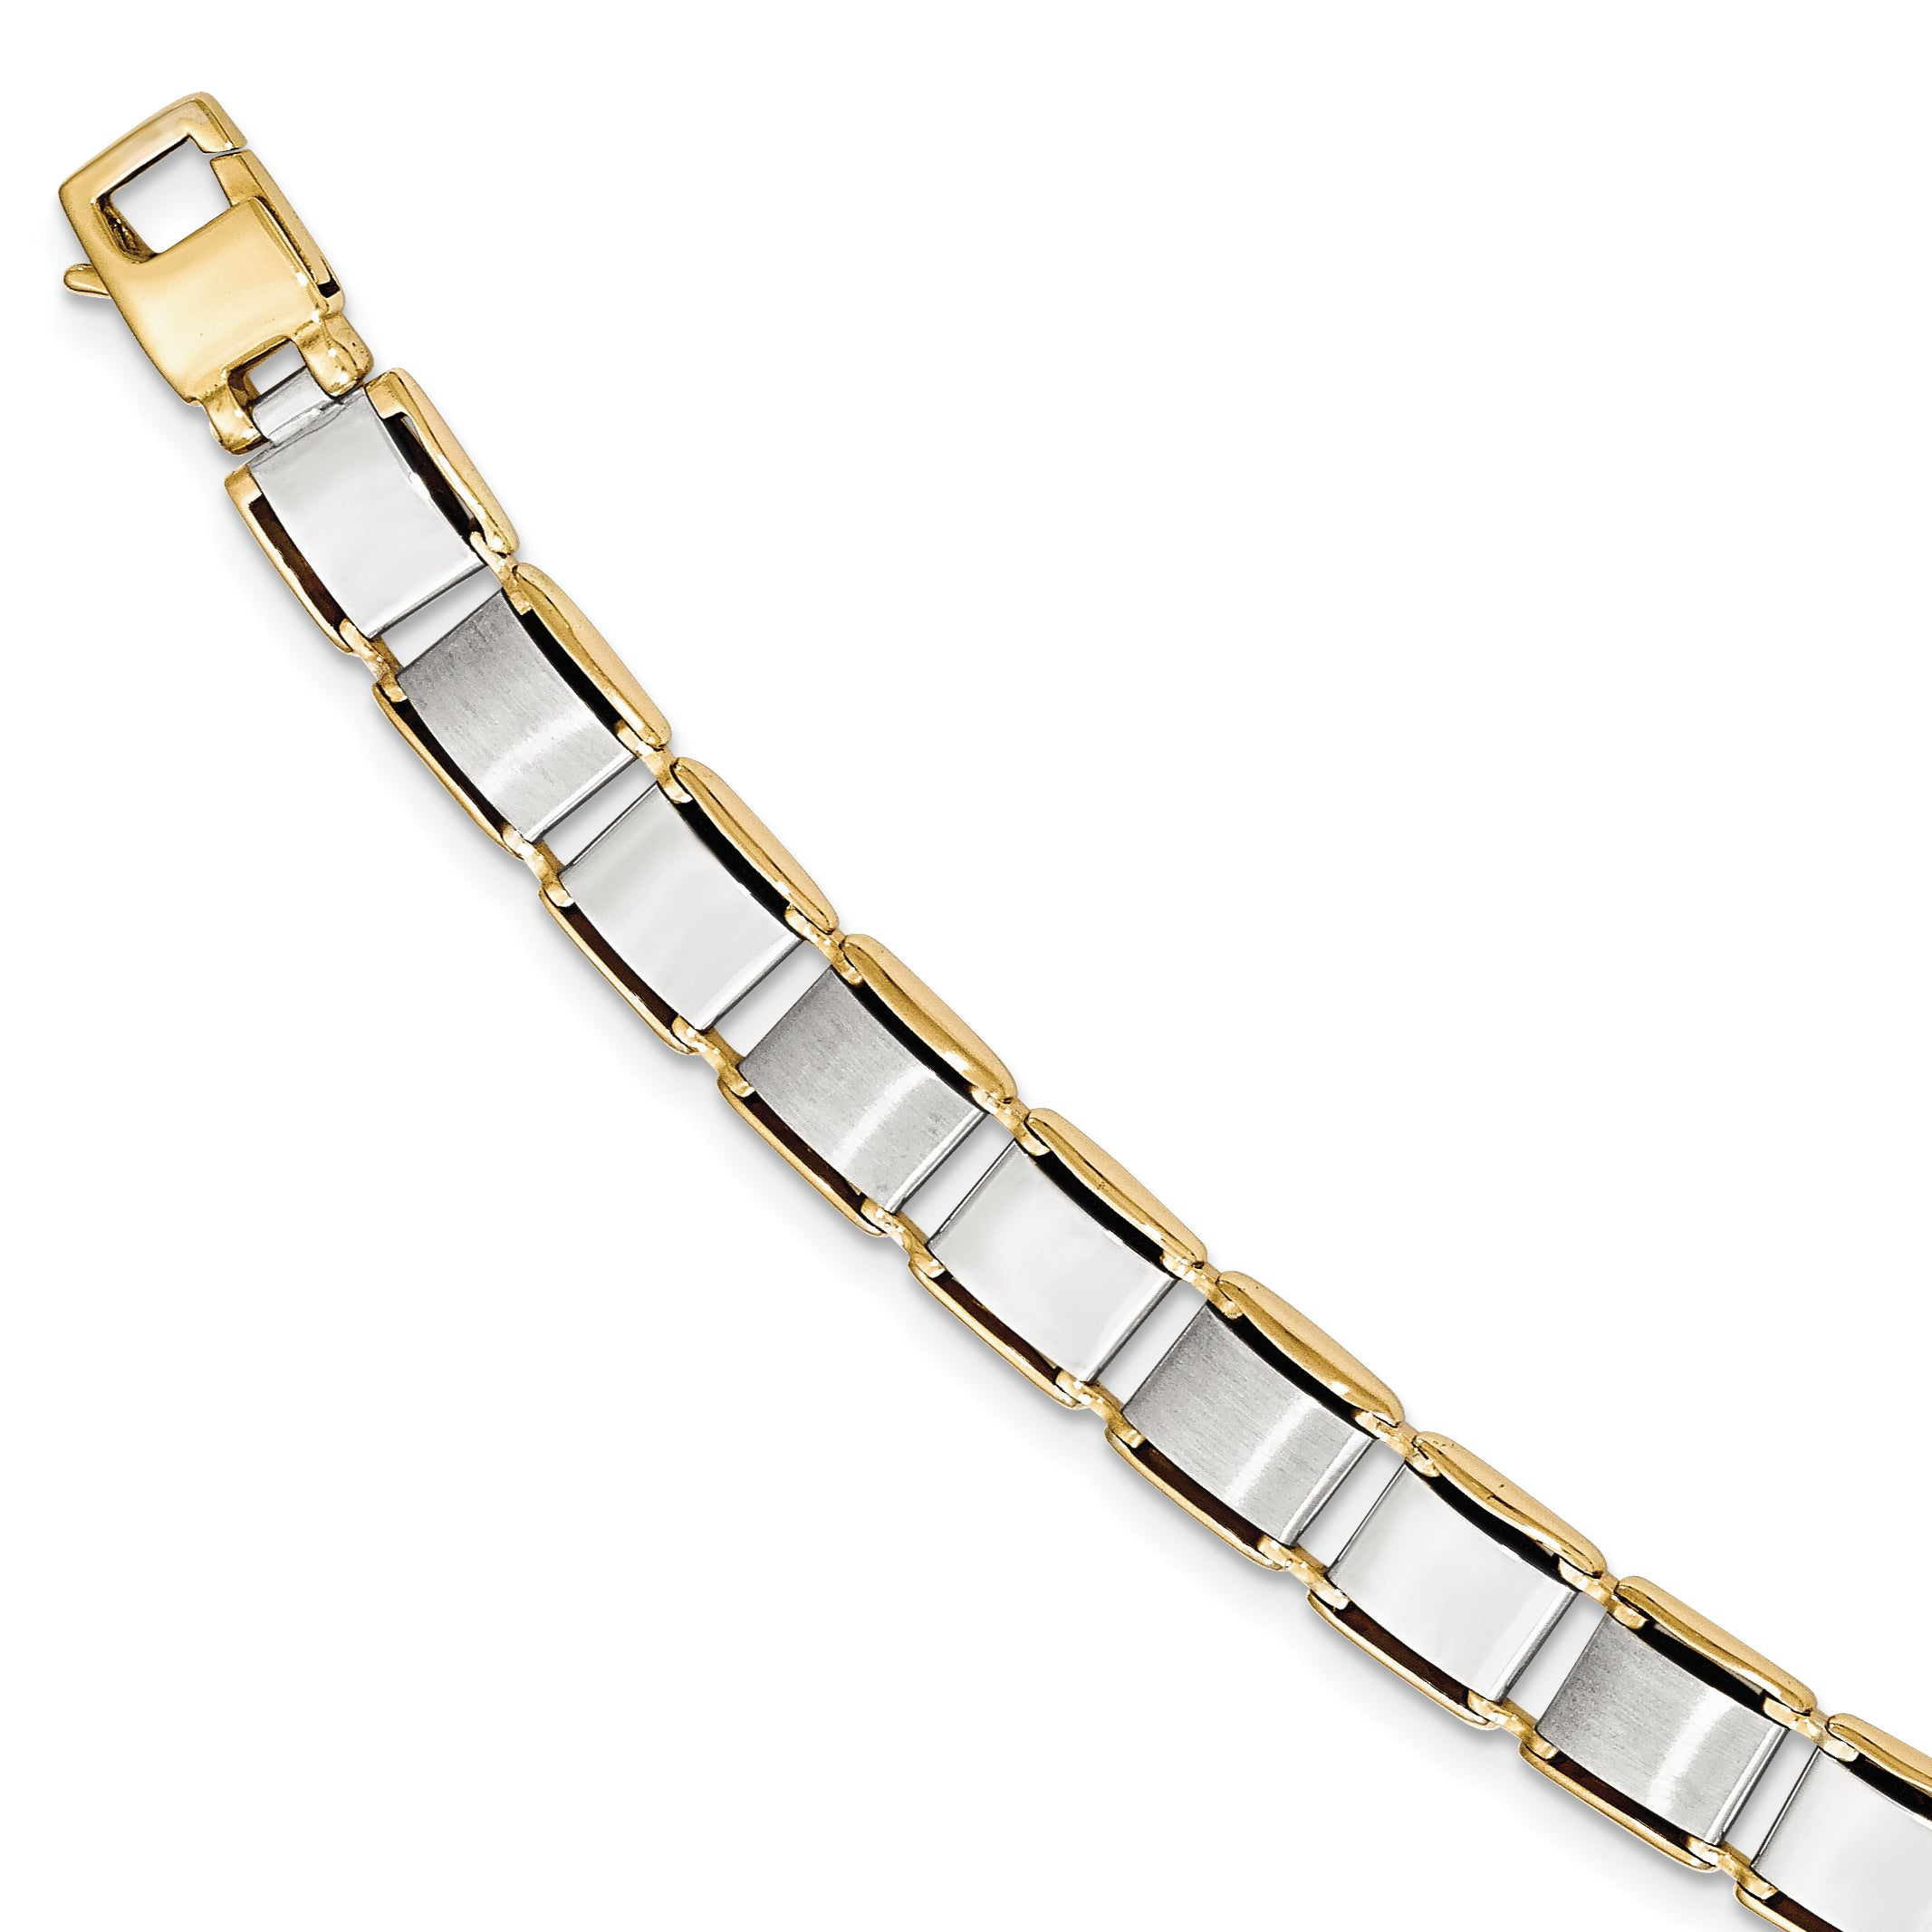 14k Two-tone Brushed & Polished 8.5in Bracelet GB231 - shirin-diamonds